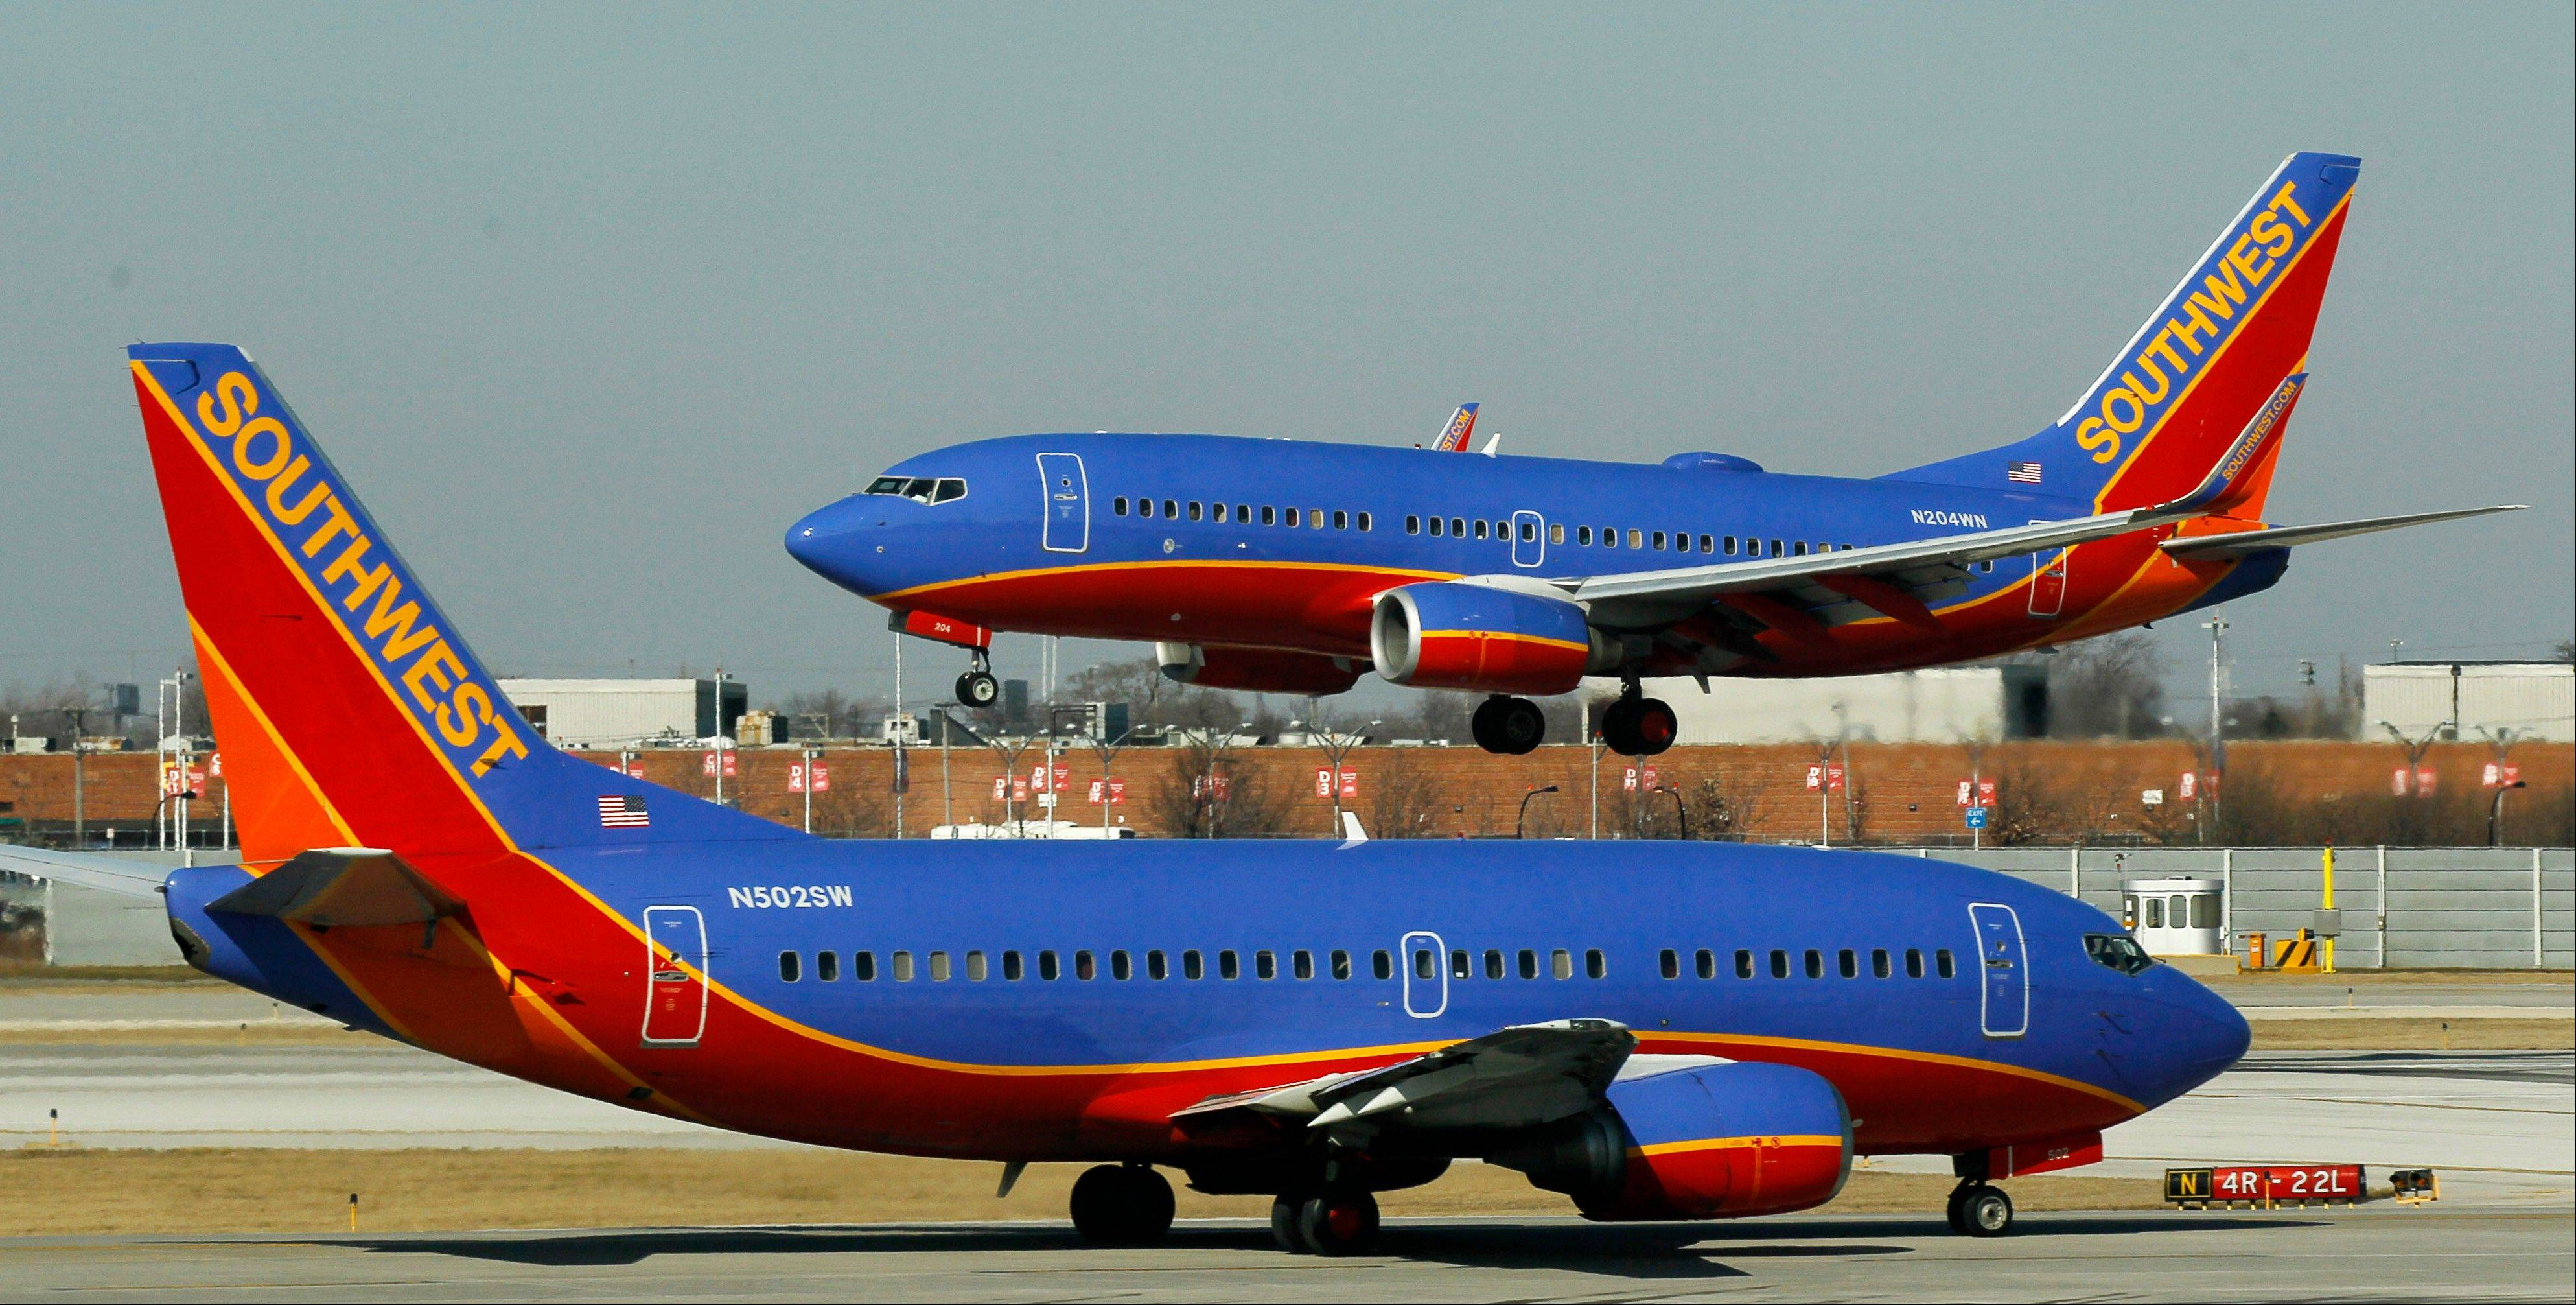 A Southwest Airlines Boeing 737 waits to take off at Chicago's Midway Airport as another lands. Is it worth $40 for you to be first on a Southwest flight? That's what it might soon cost you.